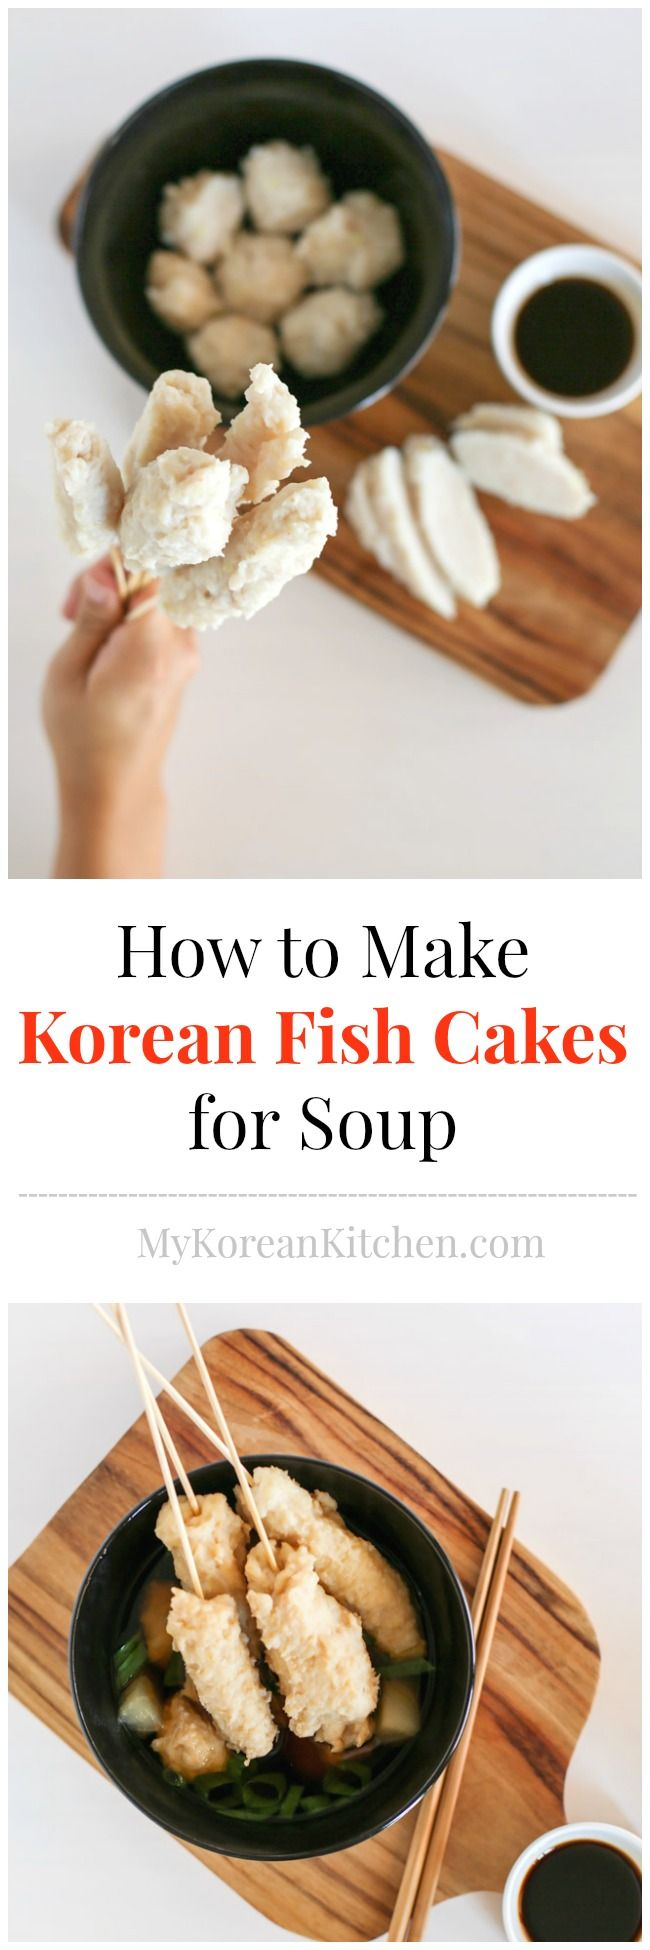 """How to make Korean fish cakes (Eomuk, Odeng) for """"soup"""" from scratch - Easy and Healthy! You'll love it! 